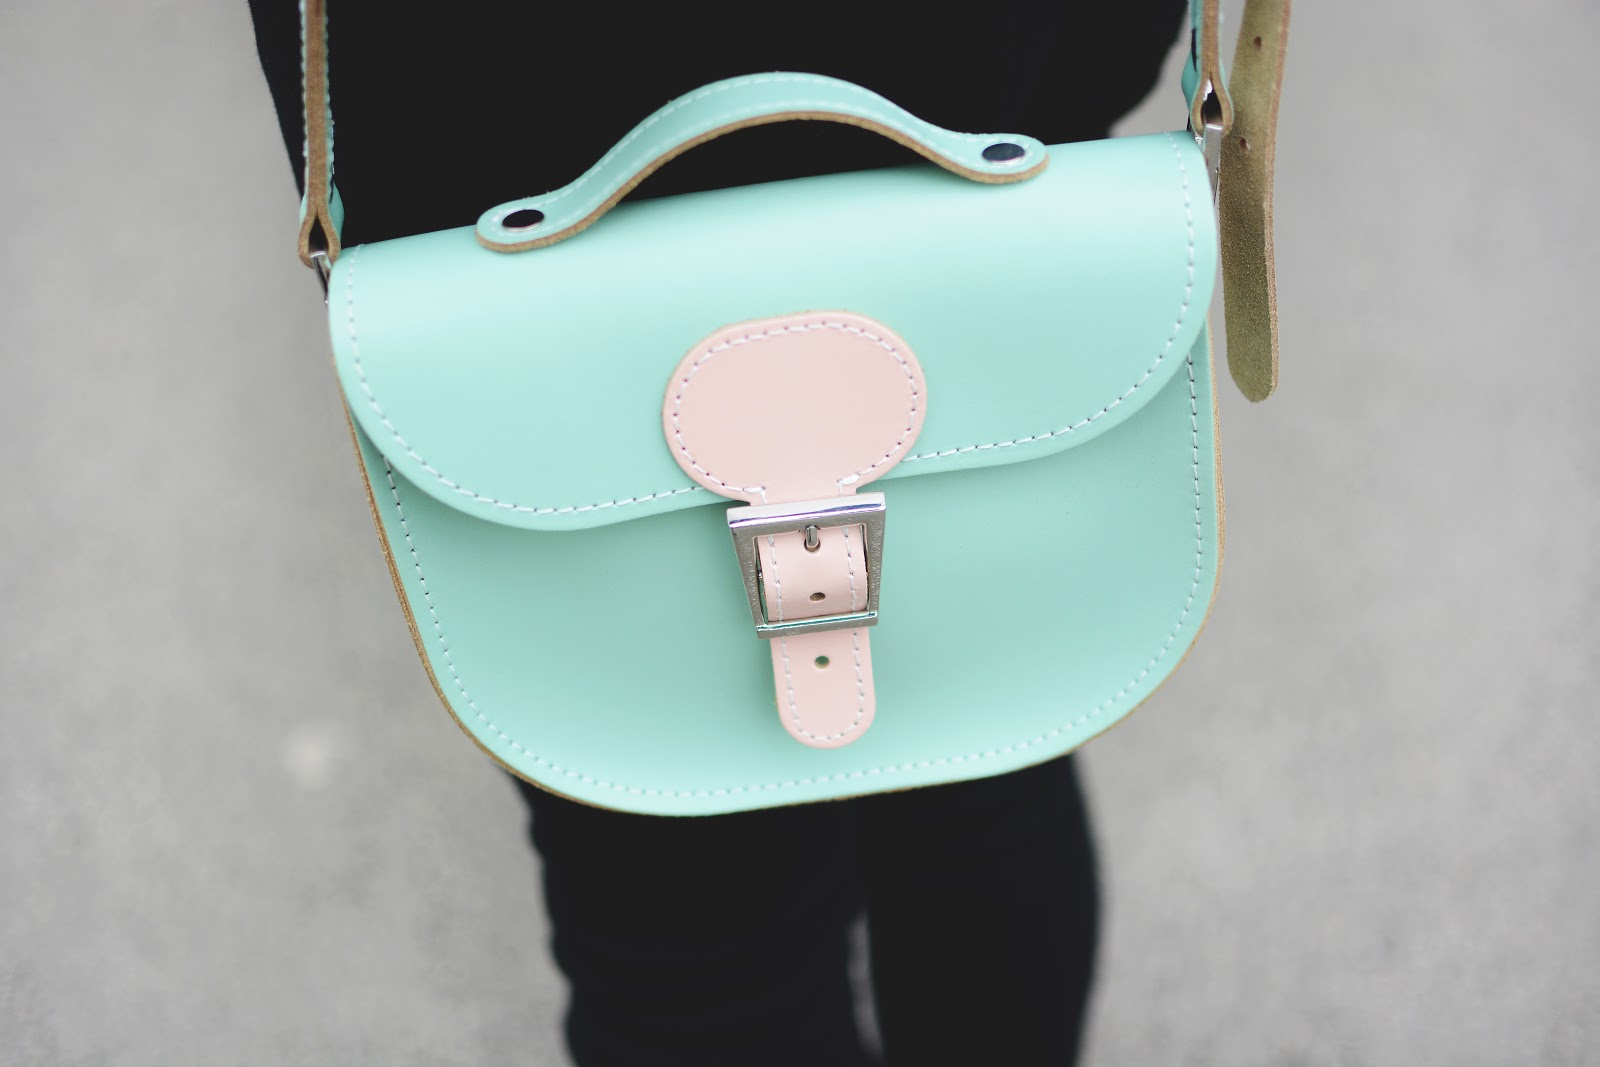 pastel green and pink brit stitch half pint leather satchel